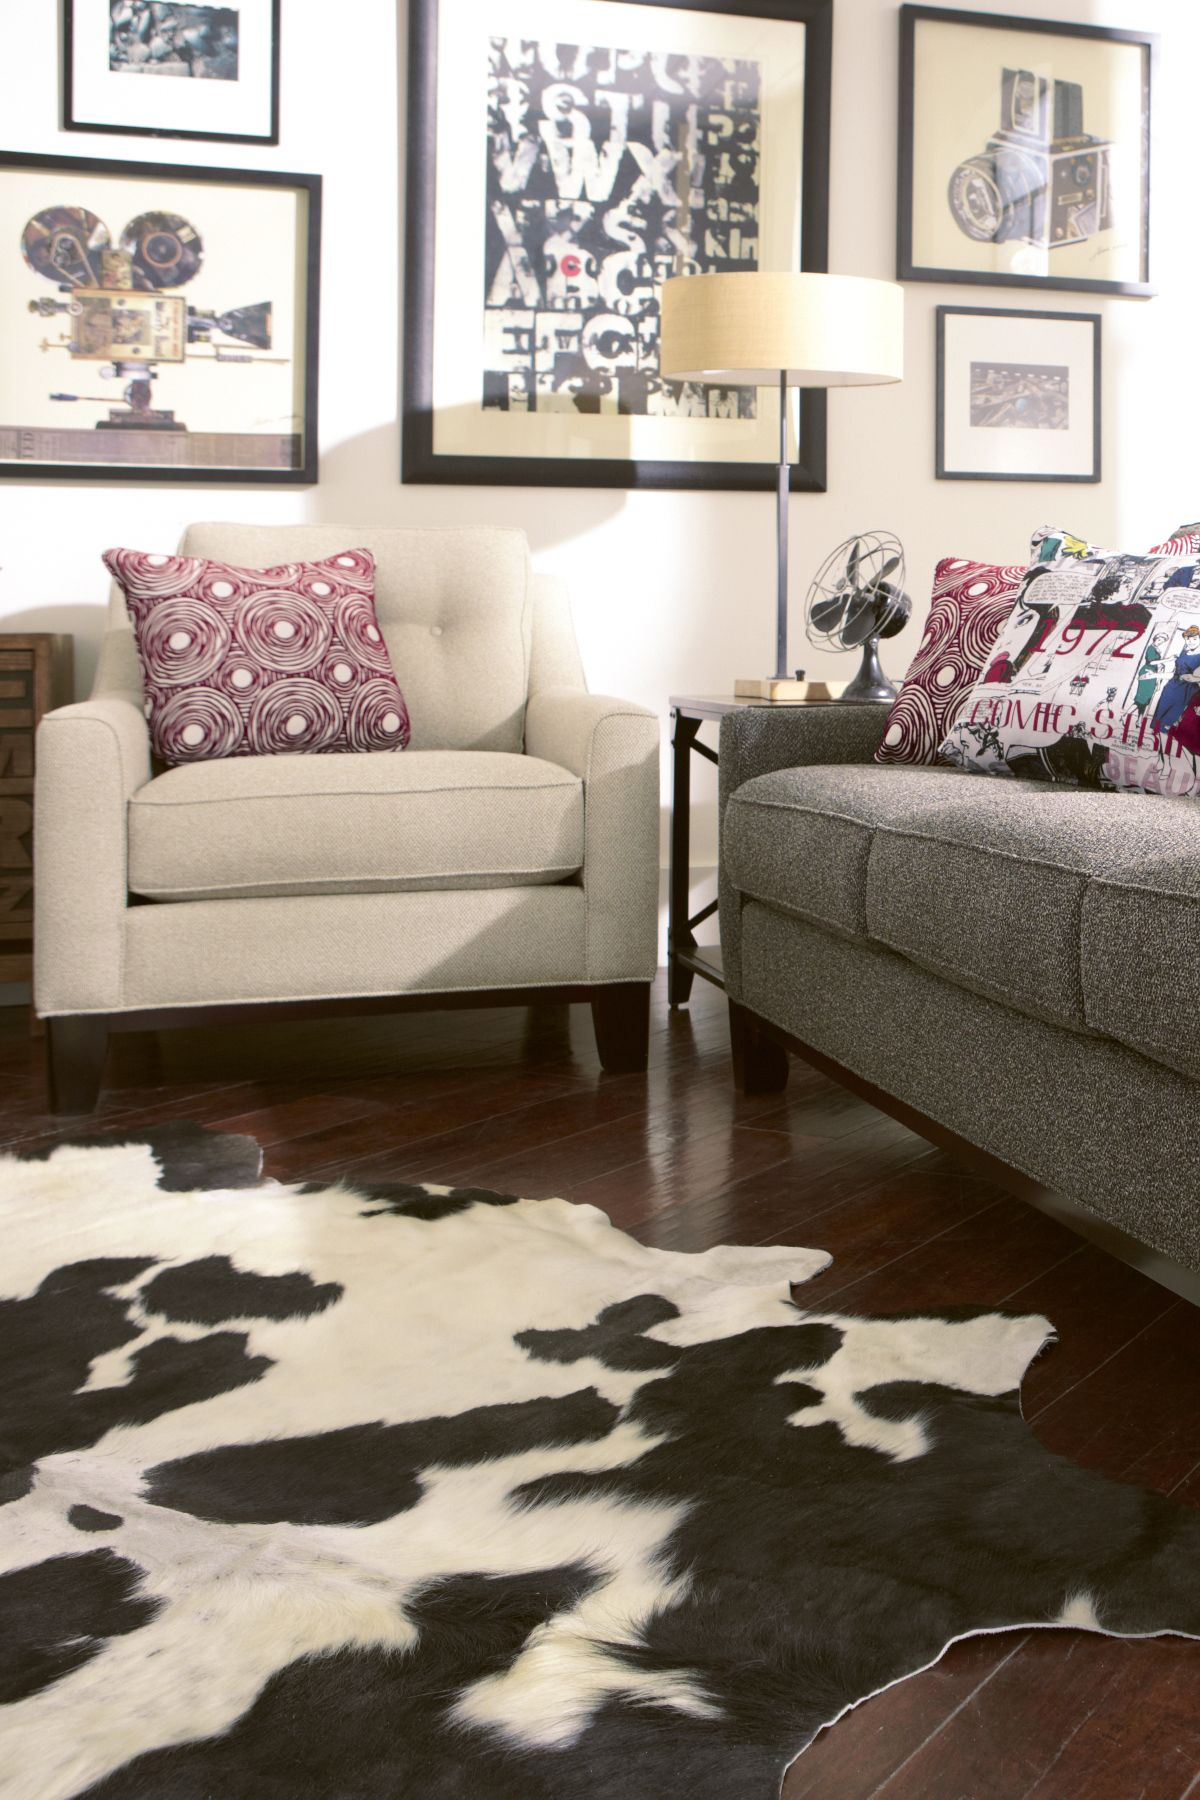 Upscale Living Room Furniture The Upscale Modern Look By Eb Kris Comfy Chair Comfy Sofa